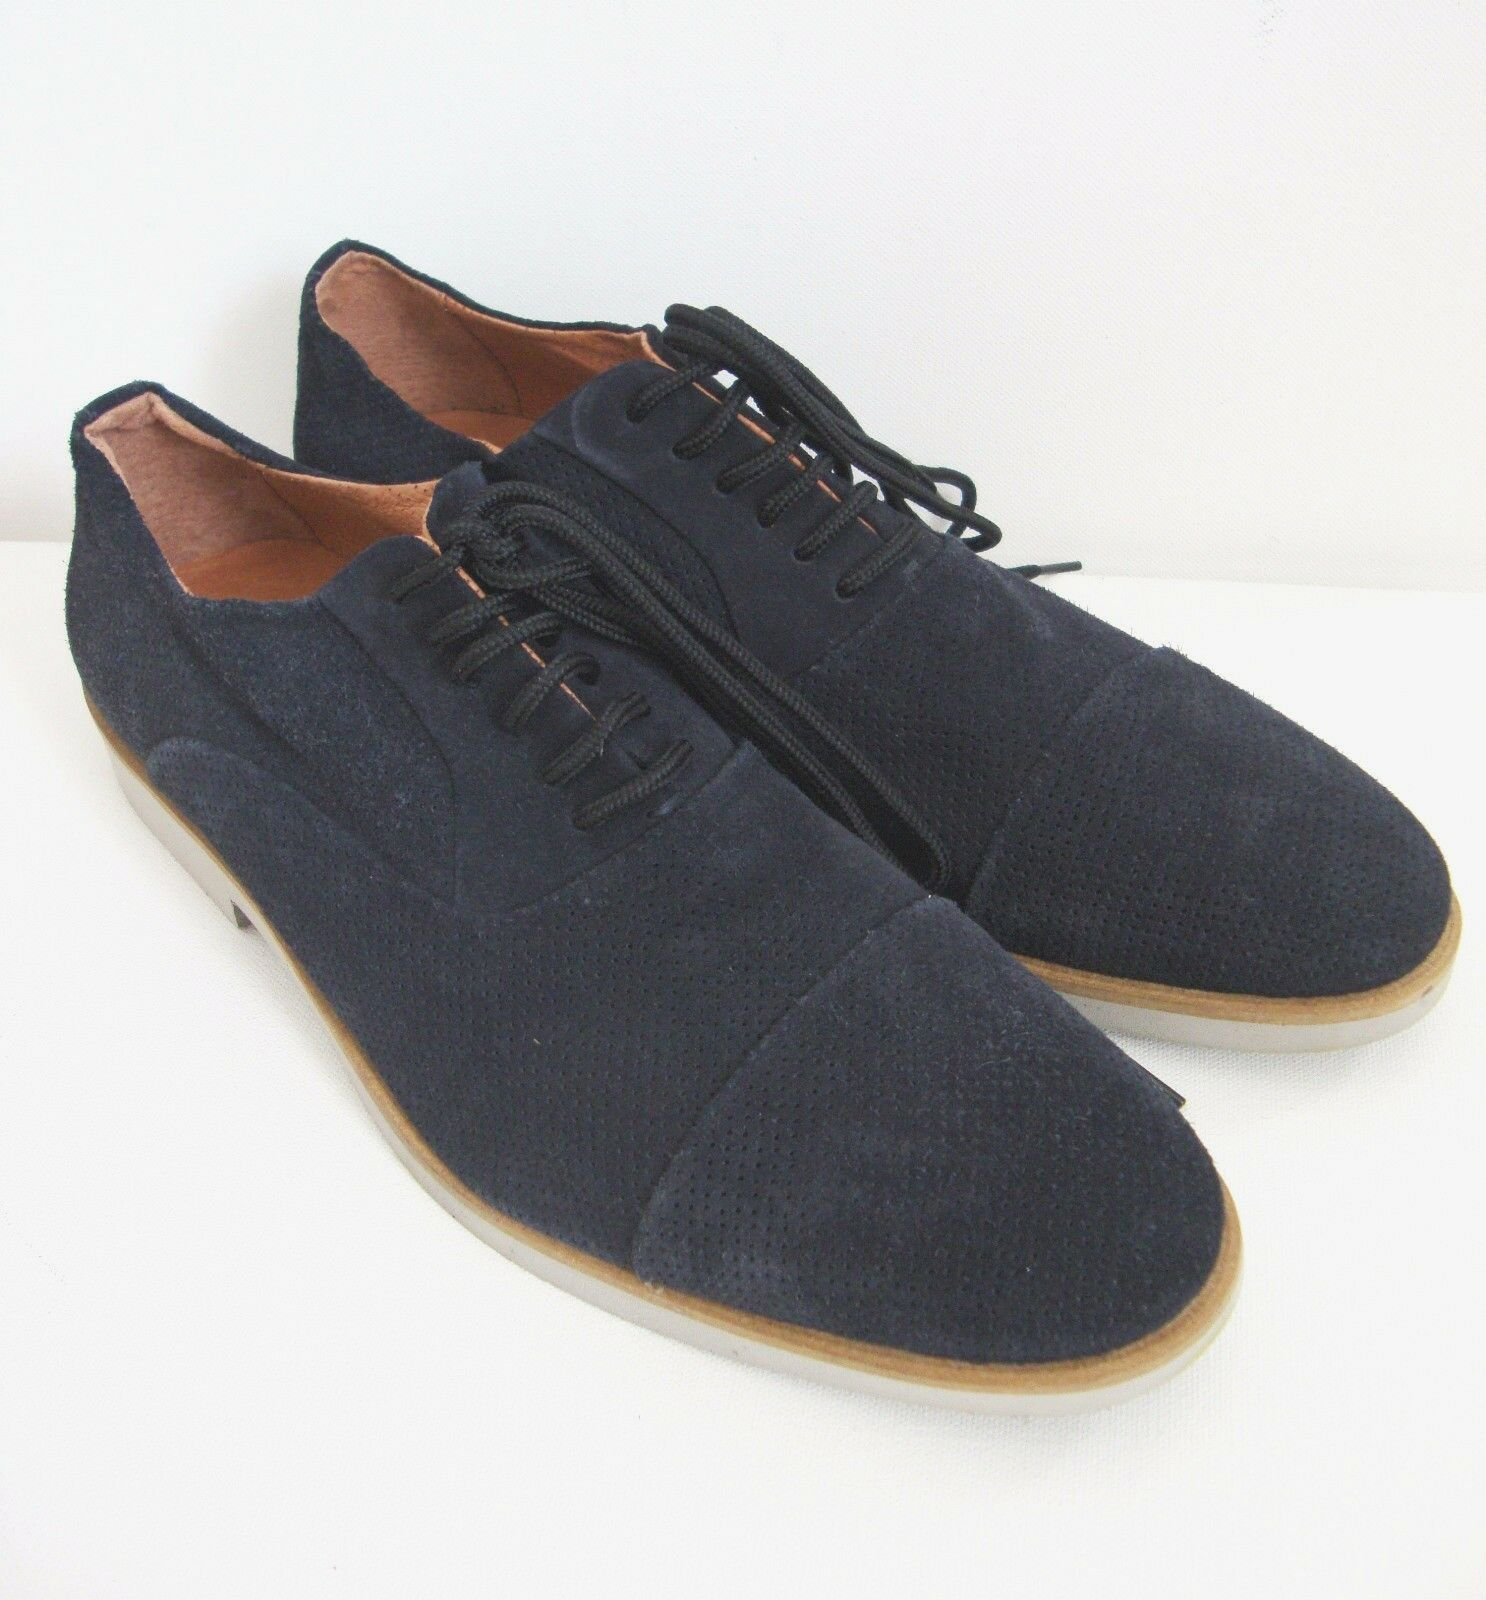 New BACCO BUCCI  DAVOR  Navy Suede Perforated Cap Toe Oxford shoes US-13